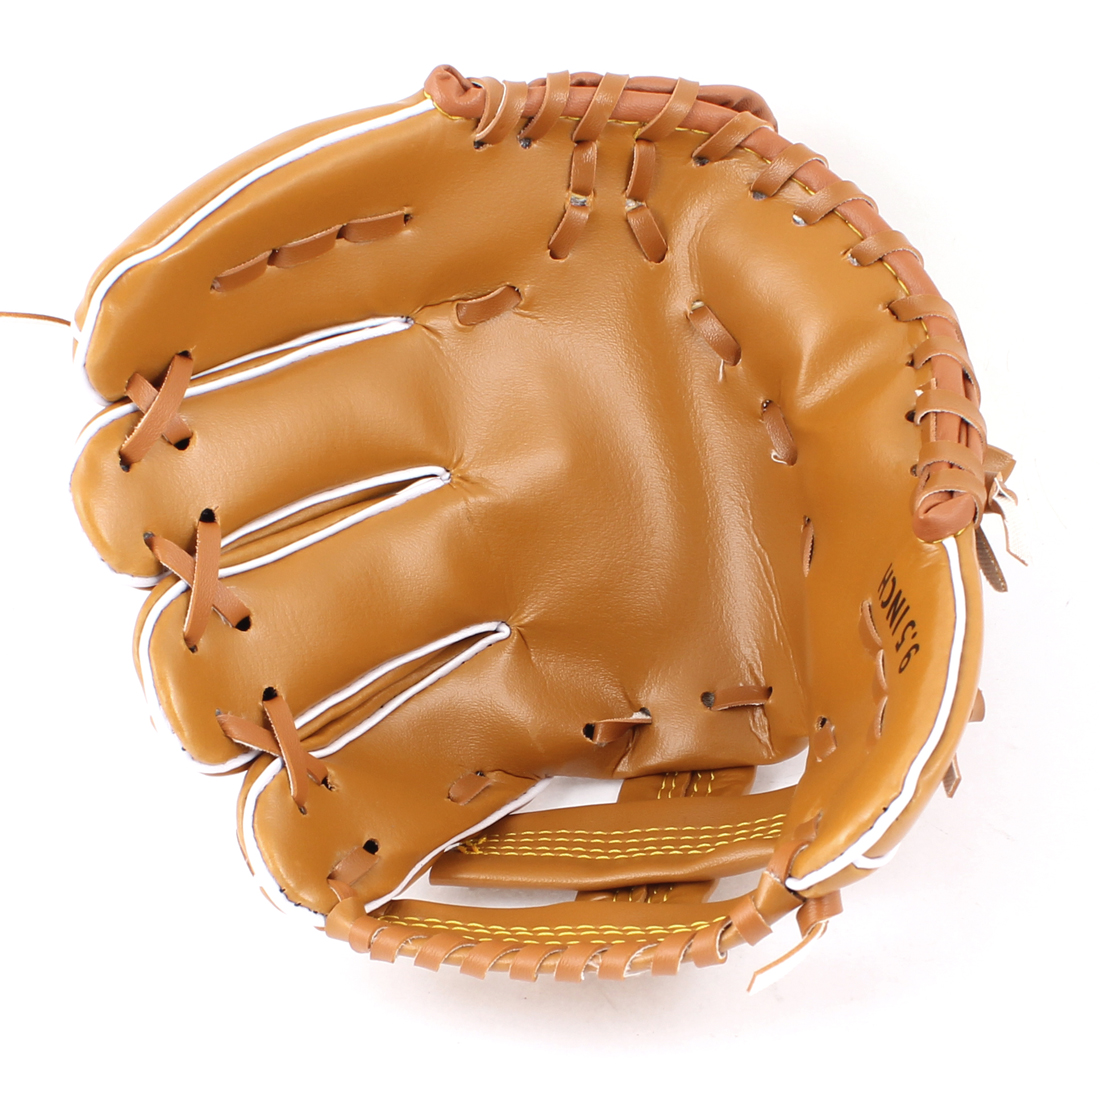 "Brown 9.5"" Height Faux Leather Left Hand Baseball Softball Glove"